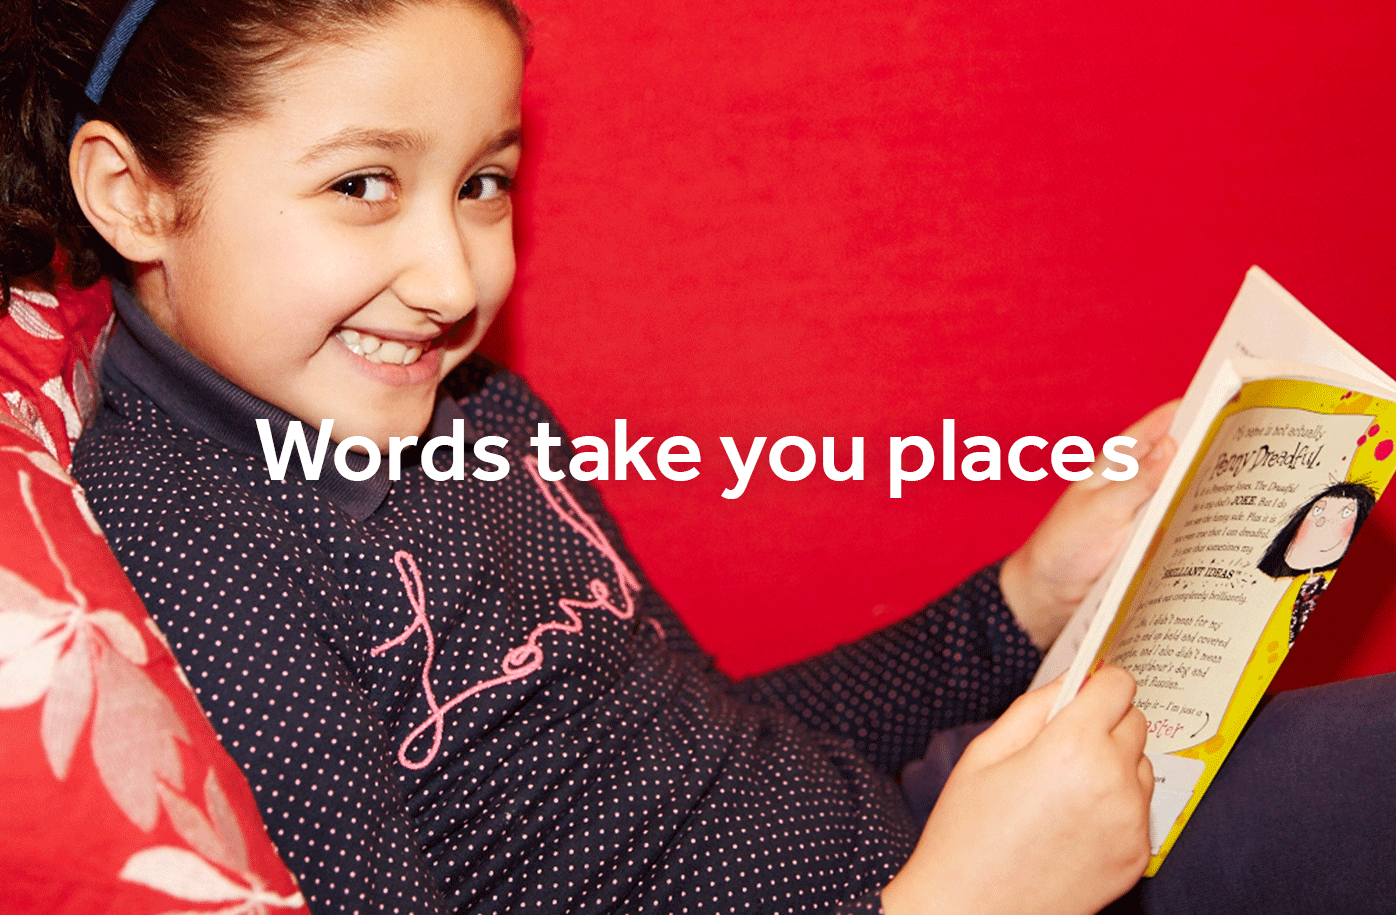 Words take you places - girl reading storybook